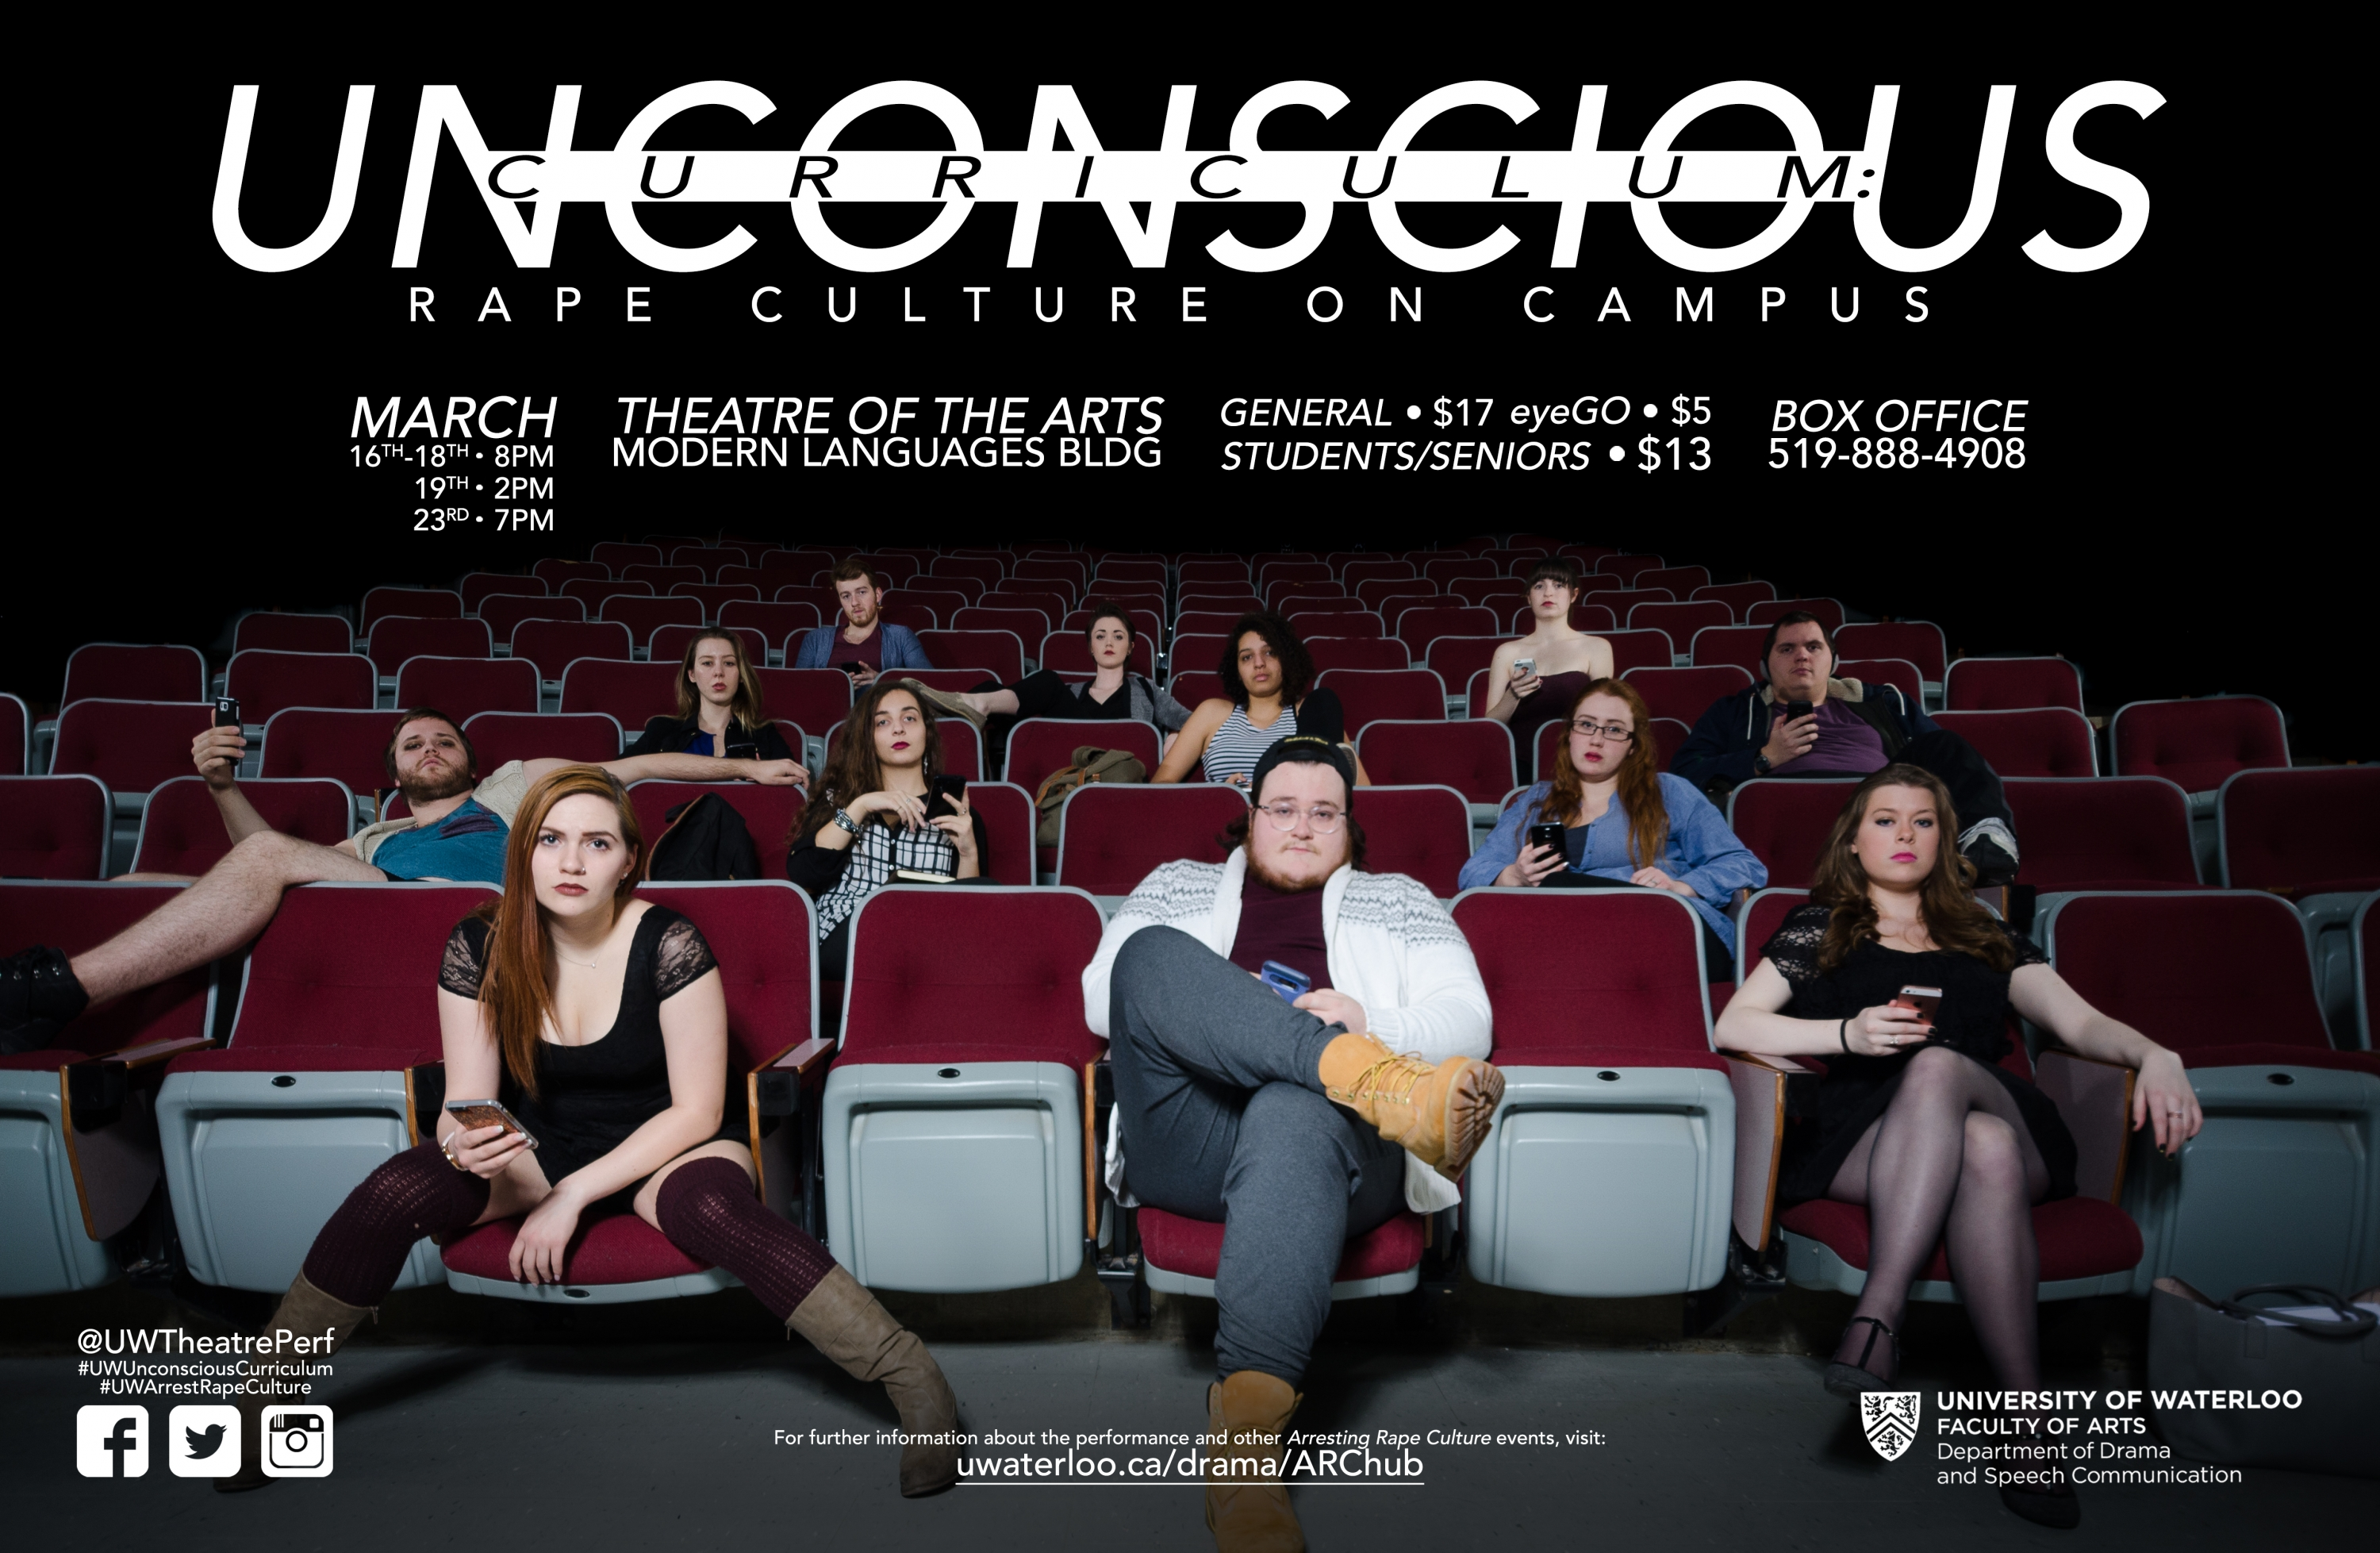 poster for event showing students sitting in lecture theatre